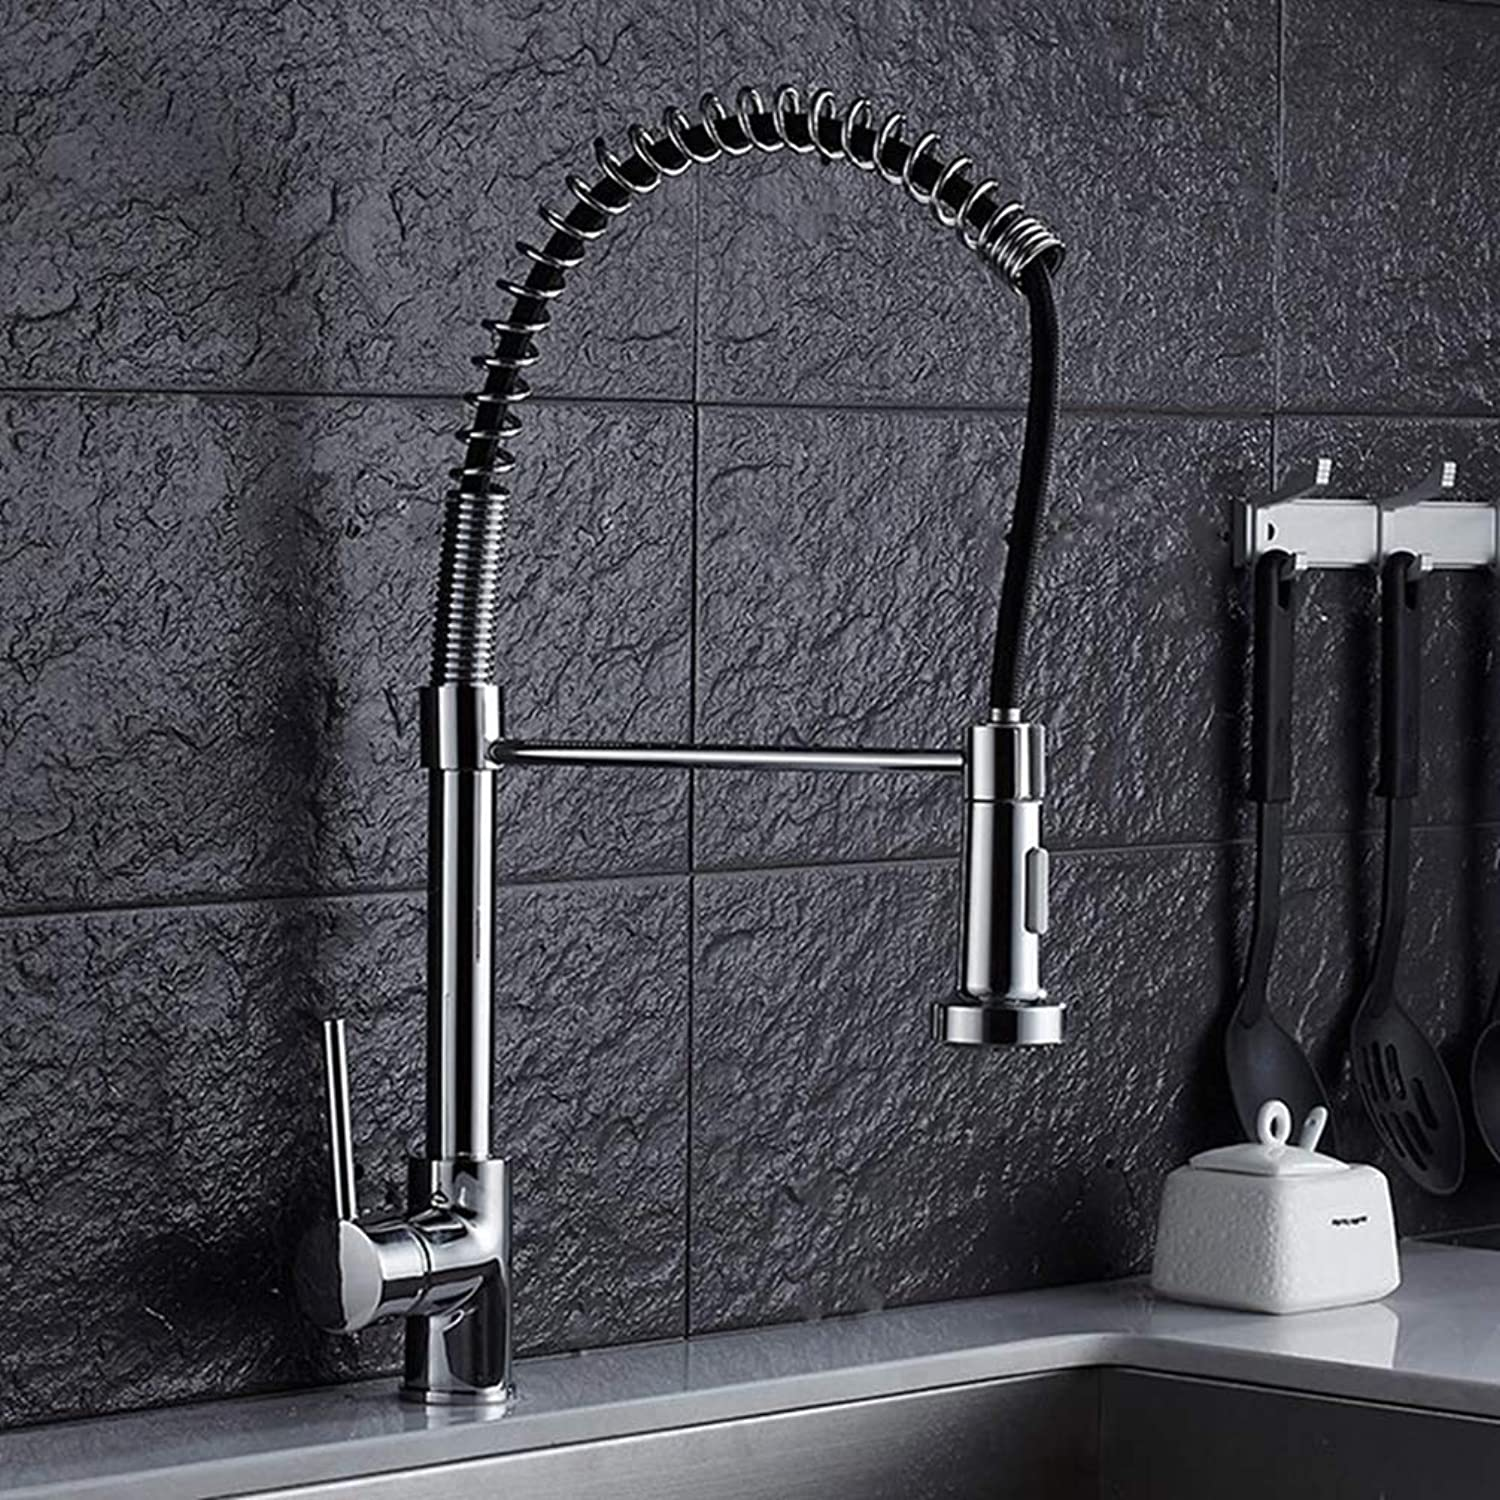 FZHLR Kitchen Faucet Single Handle Swivel Mixer Tap Chrome∕Brushed Nickel Faucet Pull Out Torneira 2-Function Water Outlet Mixer Tap,Chrome